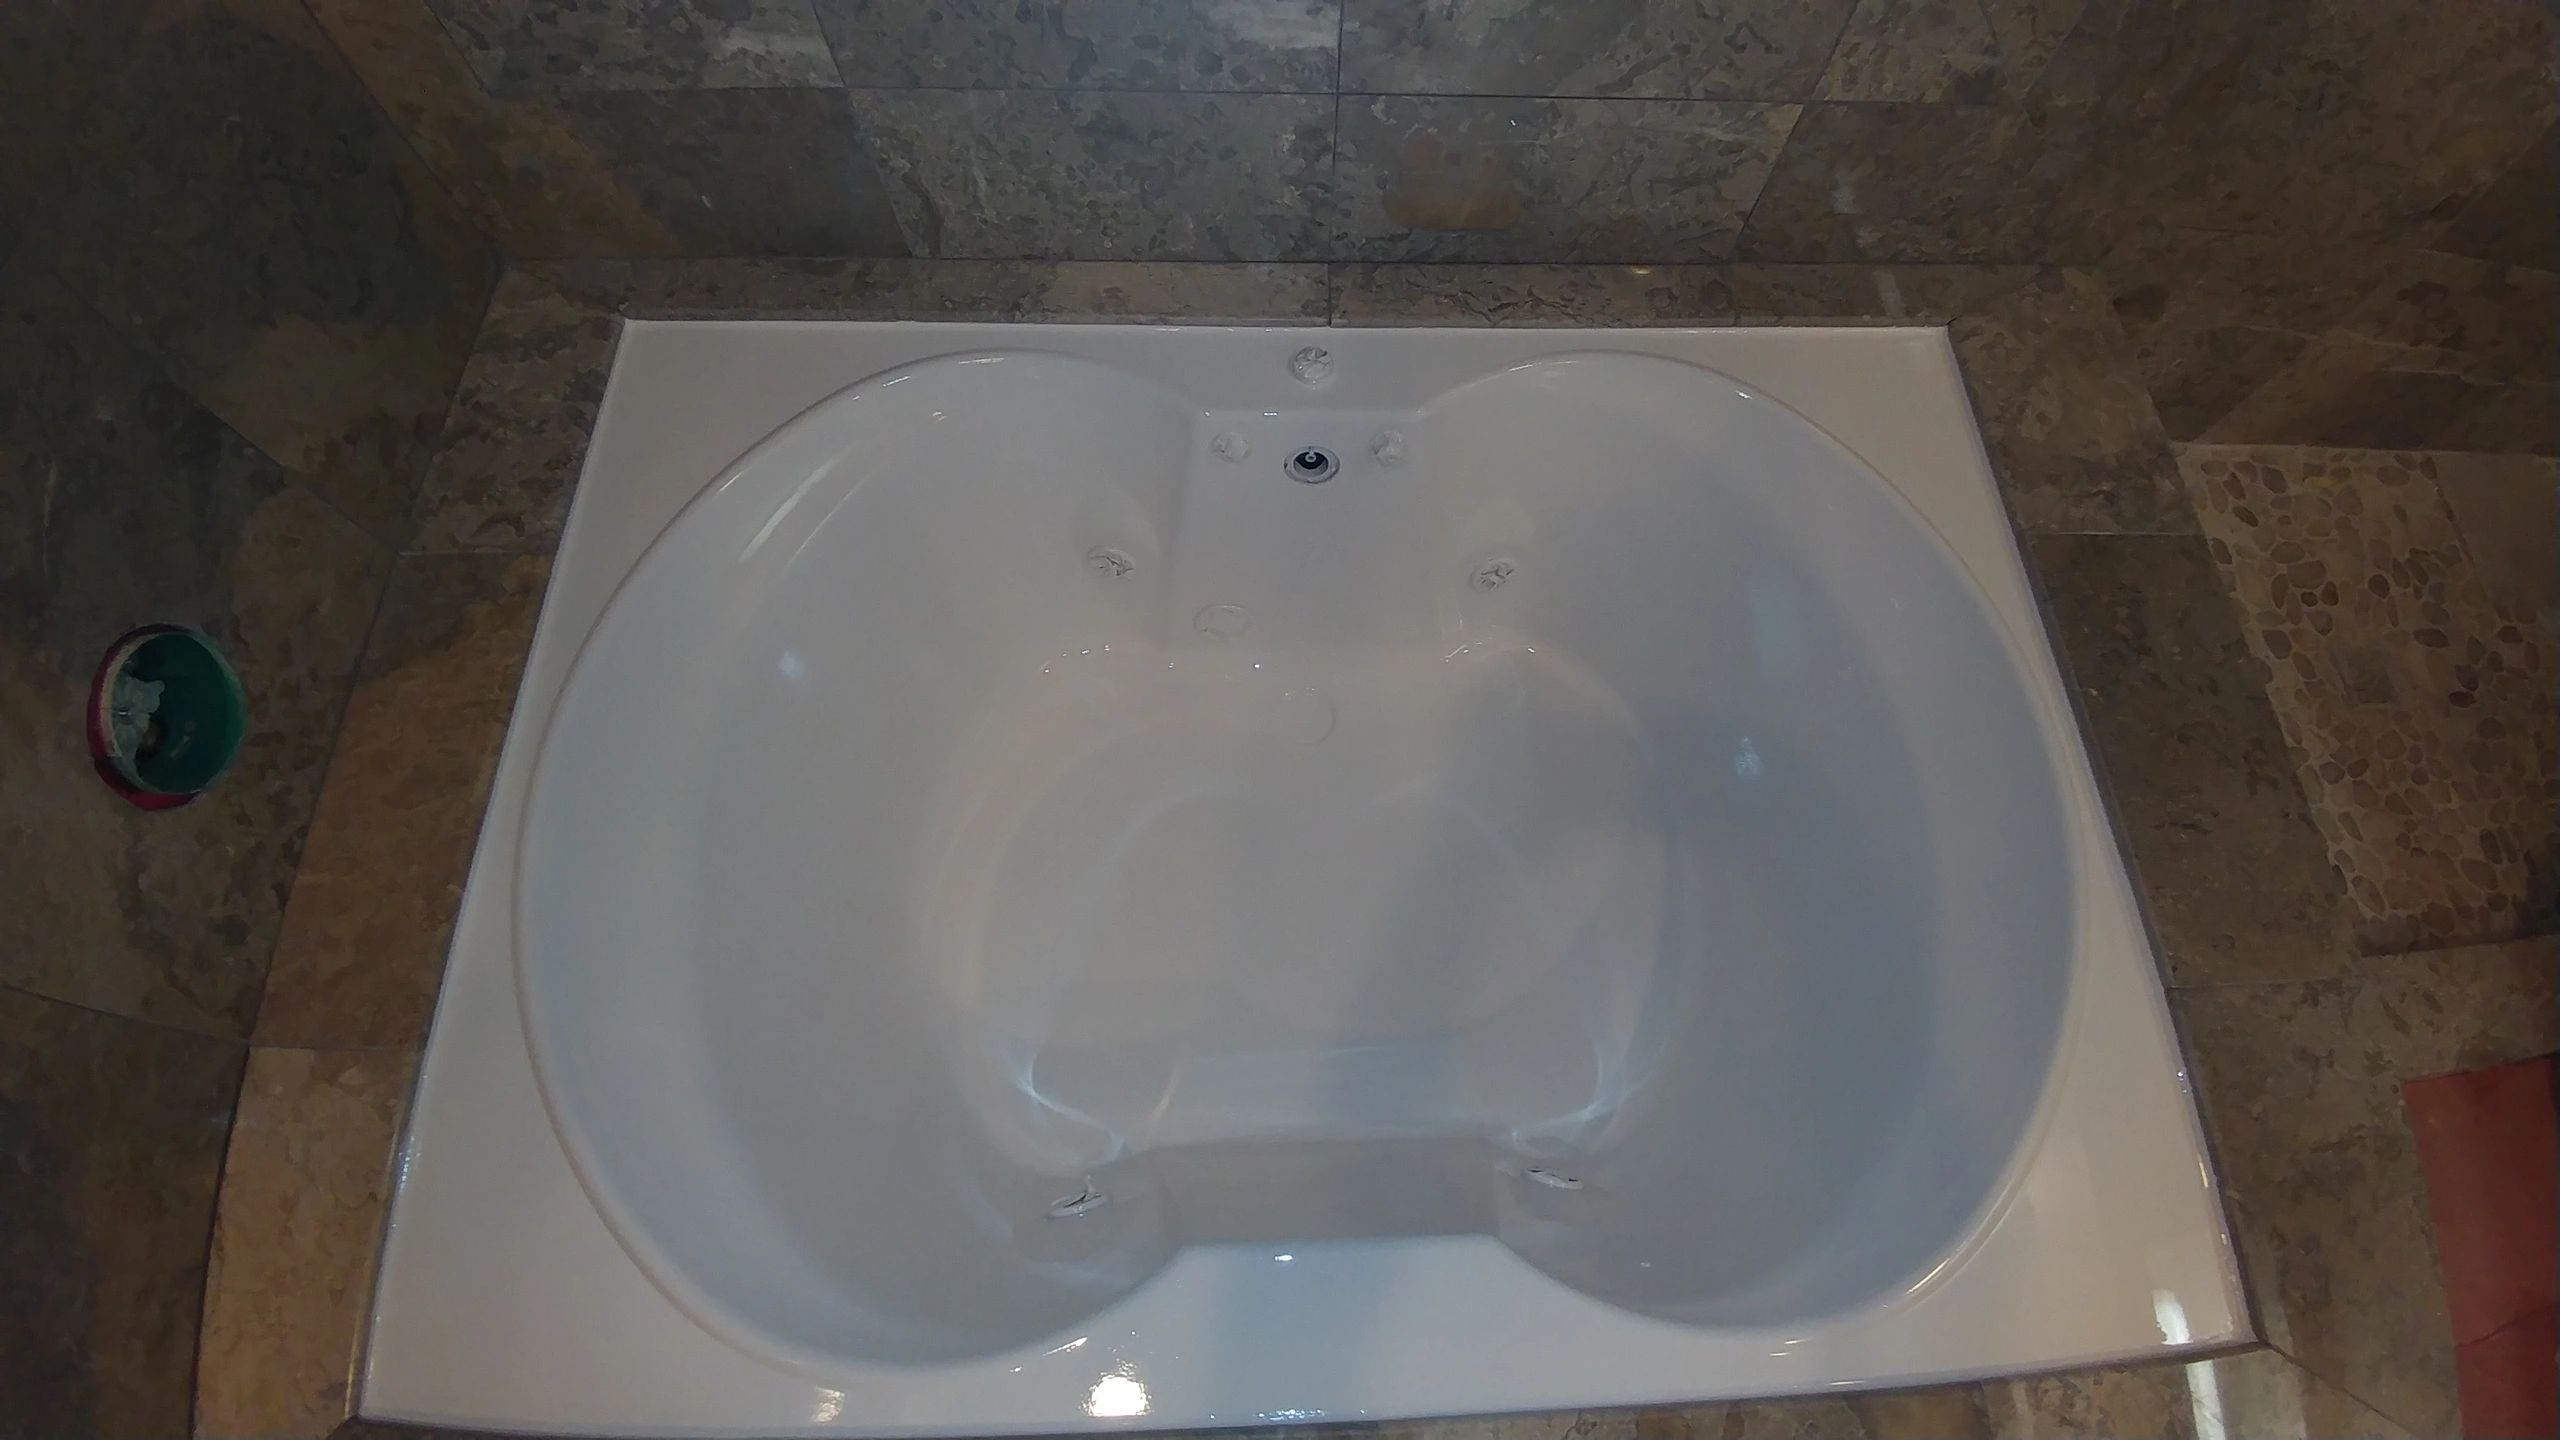 reglazing angeles inc sink counter leading los bathtub large specialists in pkb and after the